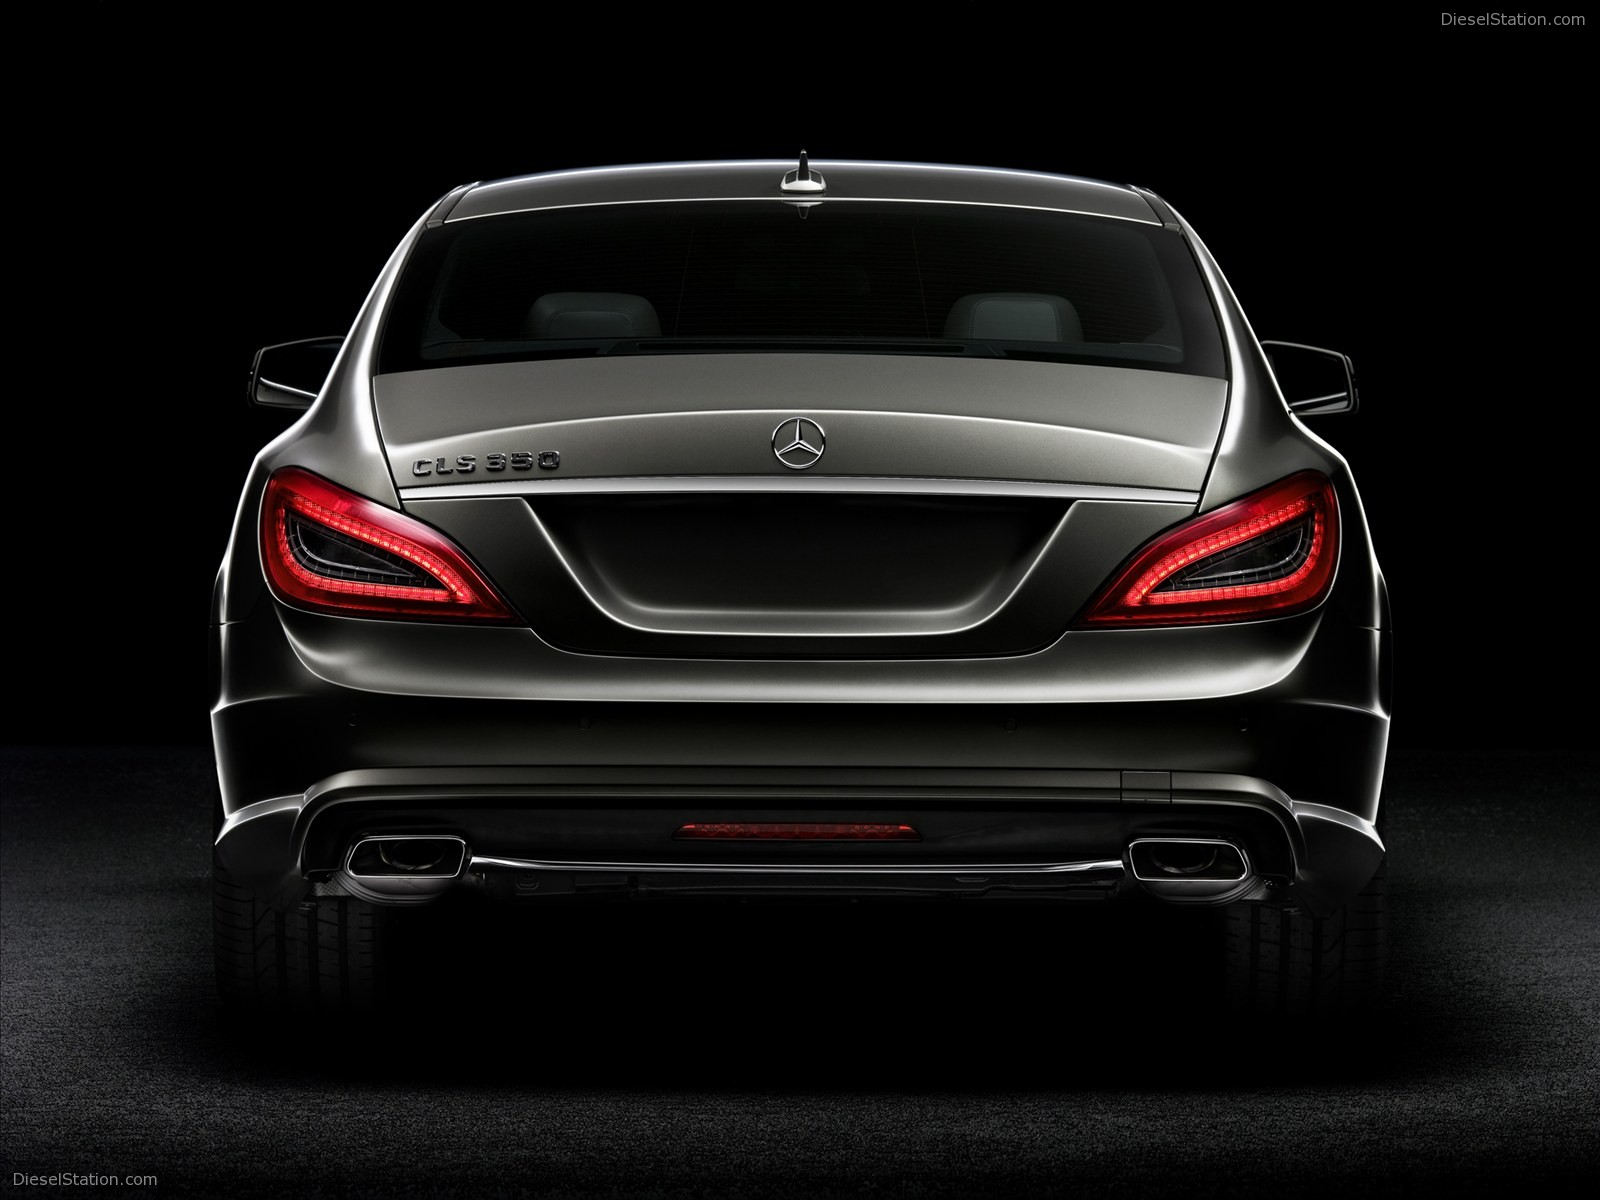 2012 Cars Wallpaper Mercedes Benz Cls Class 2012 Exotic